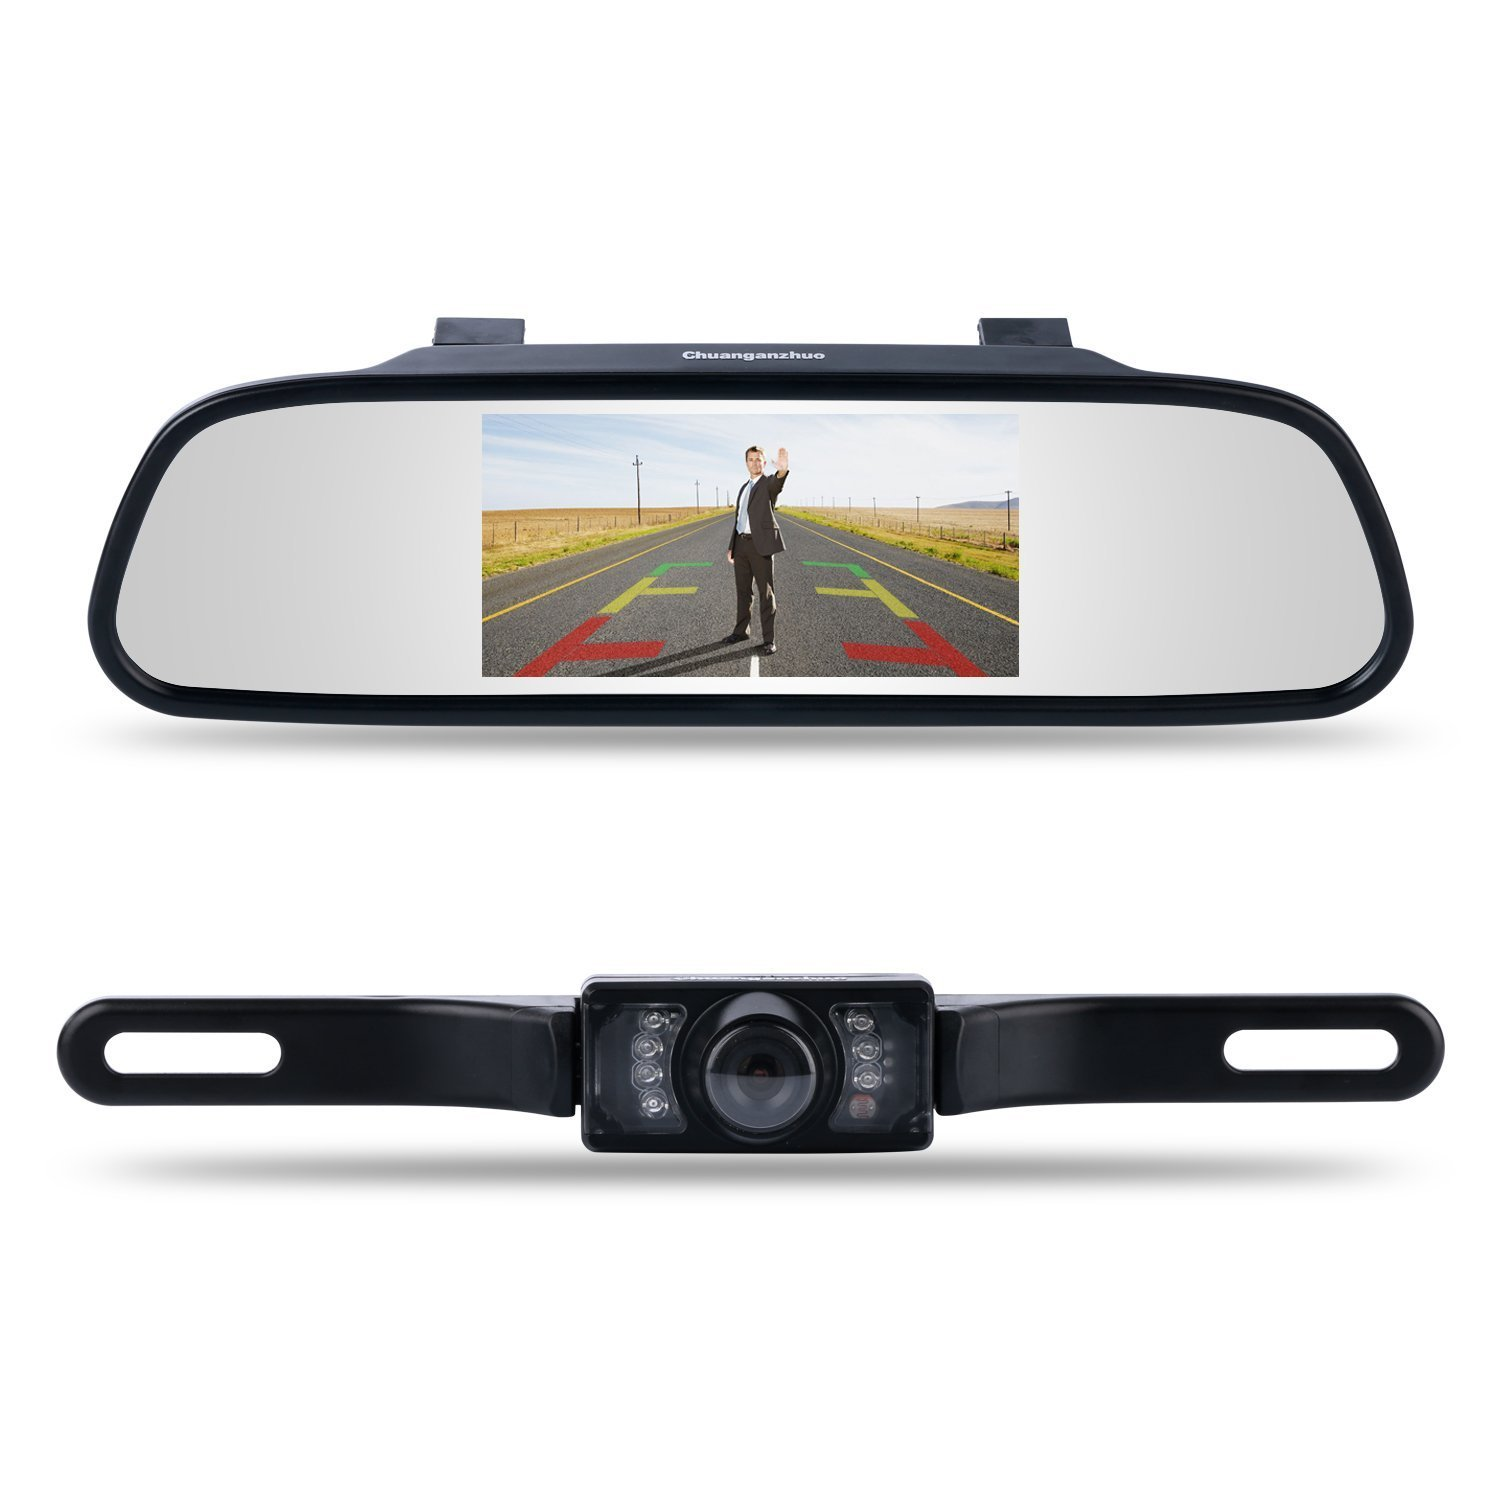 Backup Camera And Monitor Kitchuanganzhuo 43 Car E36 Mirror Wiring Diagram Vehicle Rearview For Dvd Vcr Reverse Cmos Rear View License